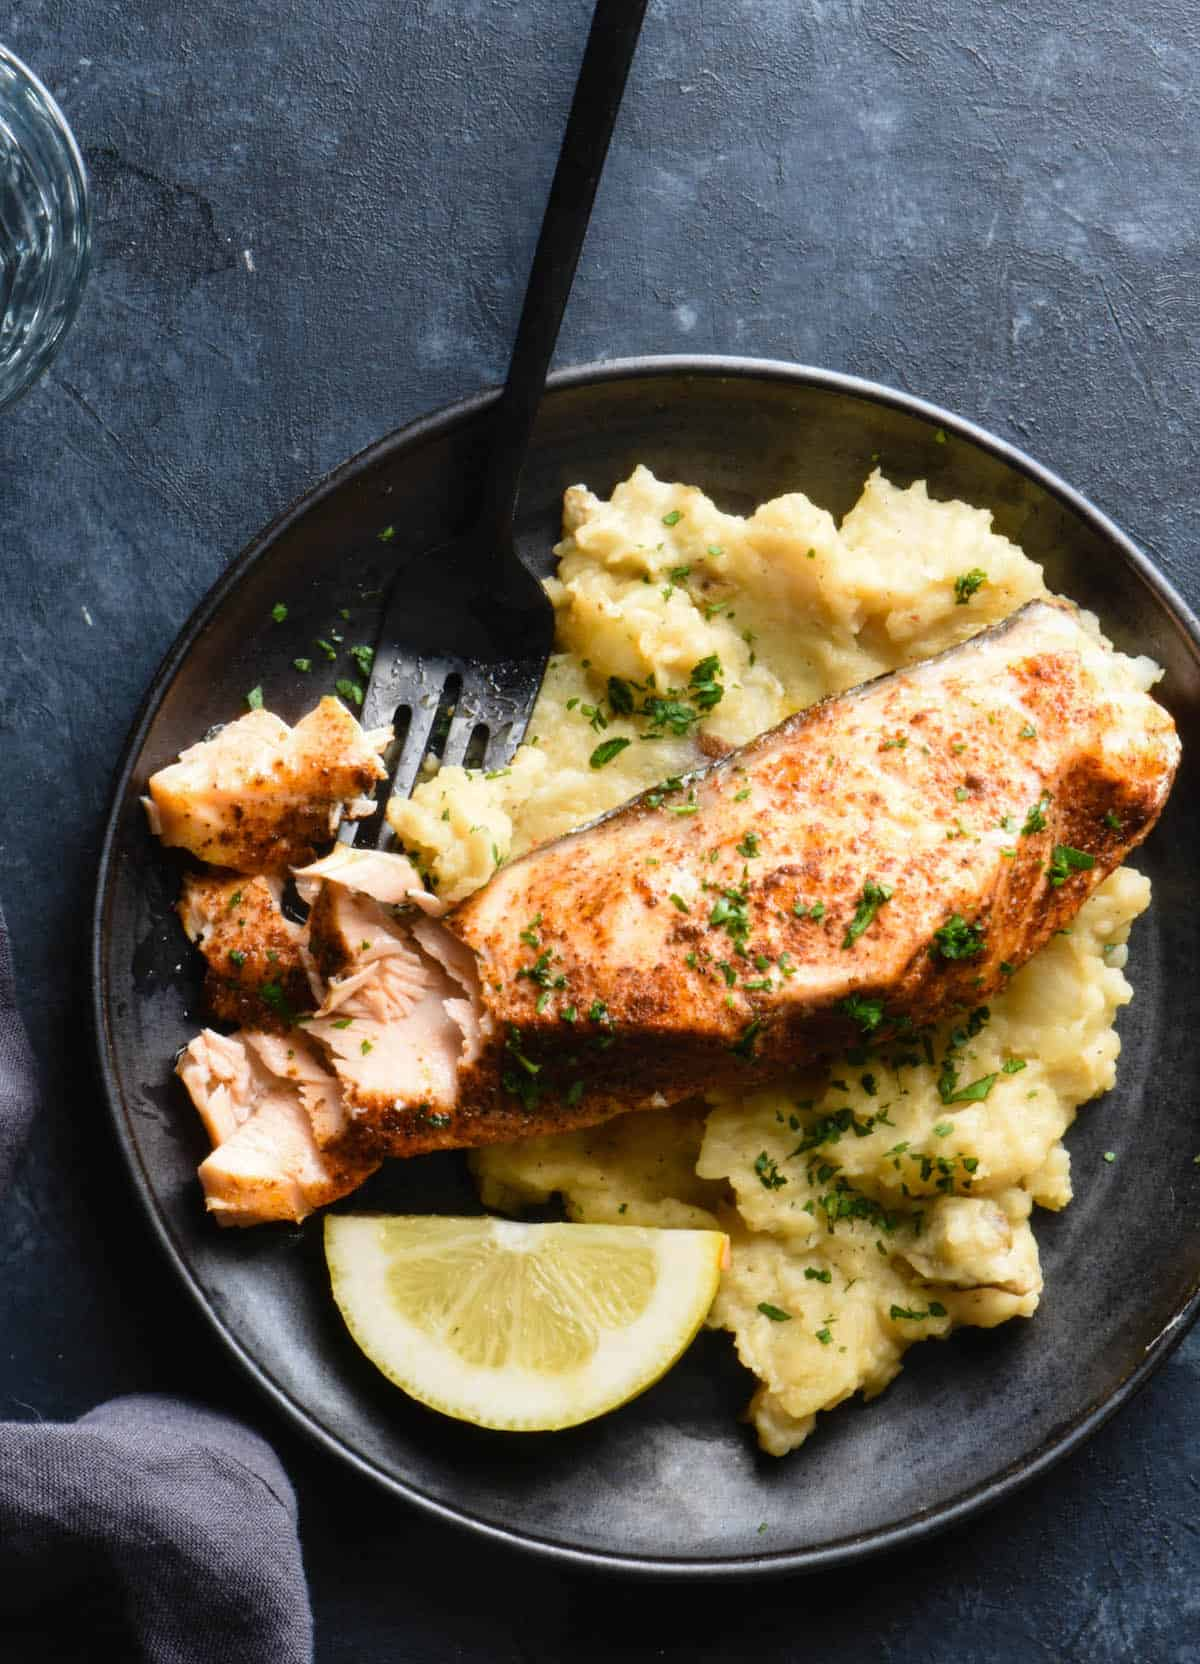 Black plate on dark background filled with mashed potatoes and salmon. Black fork is cutting into salmon fillet.